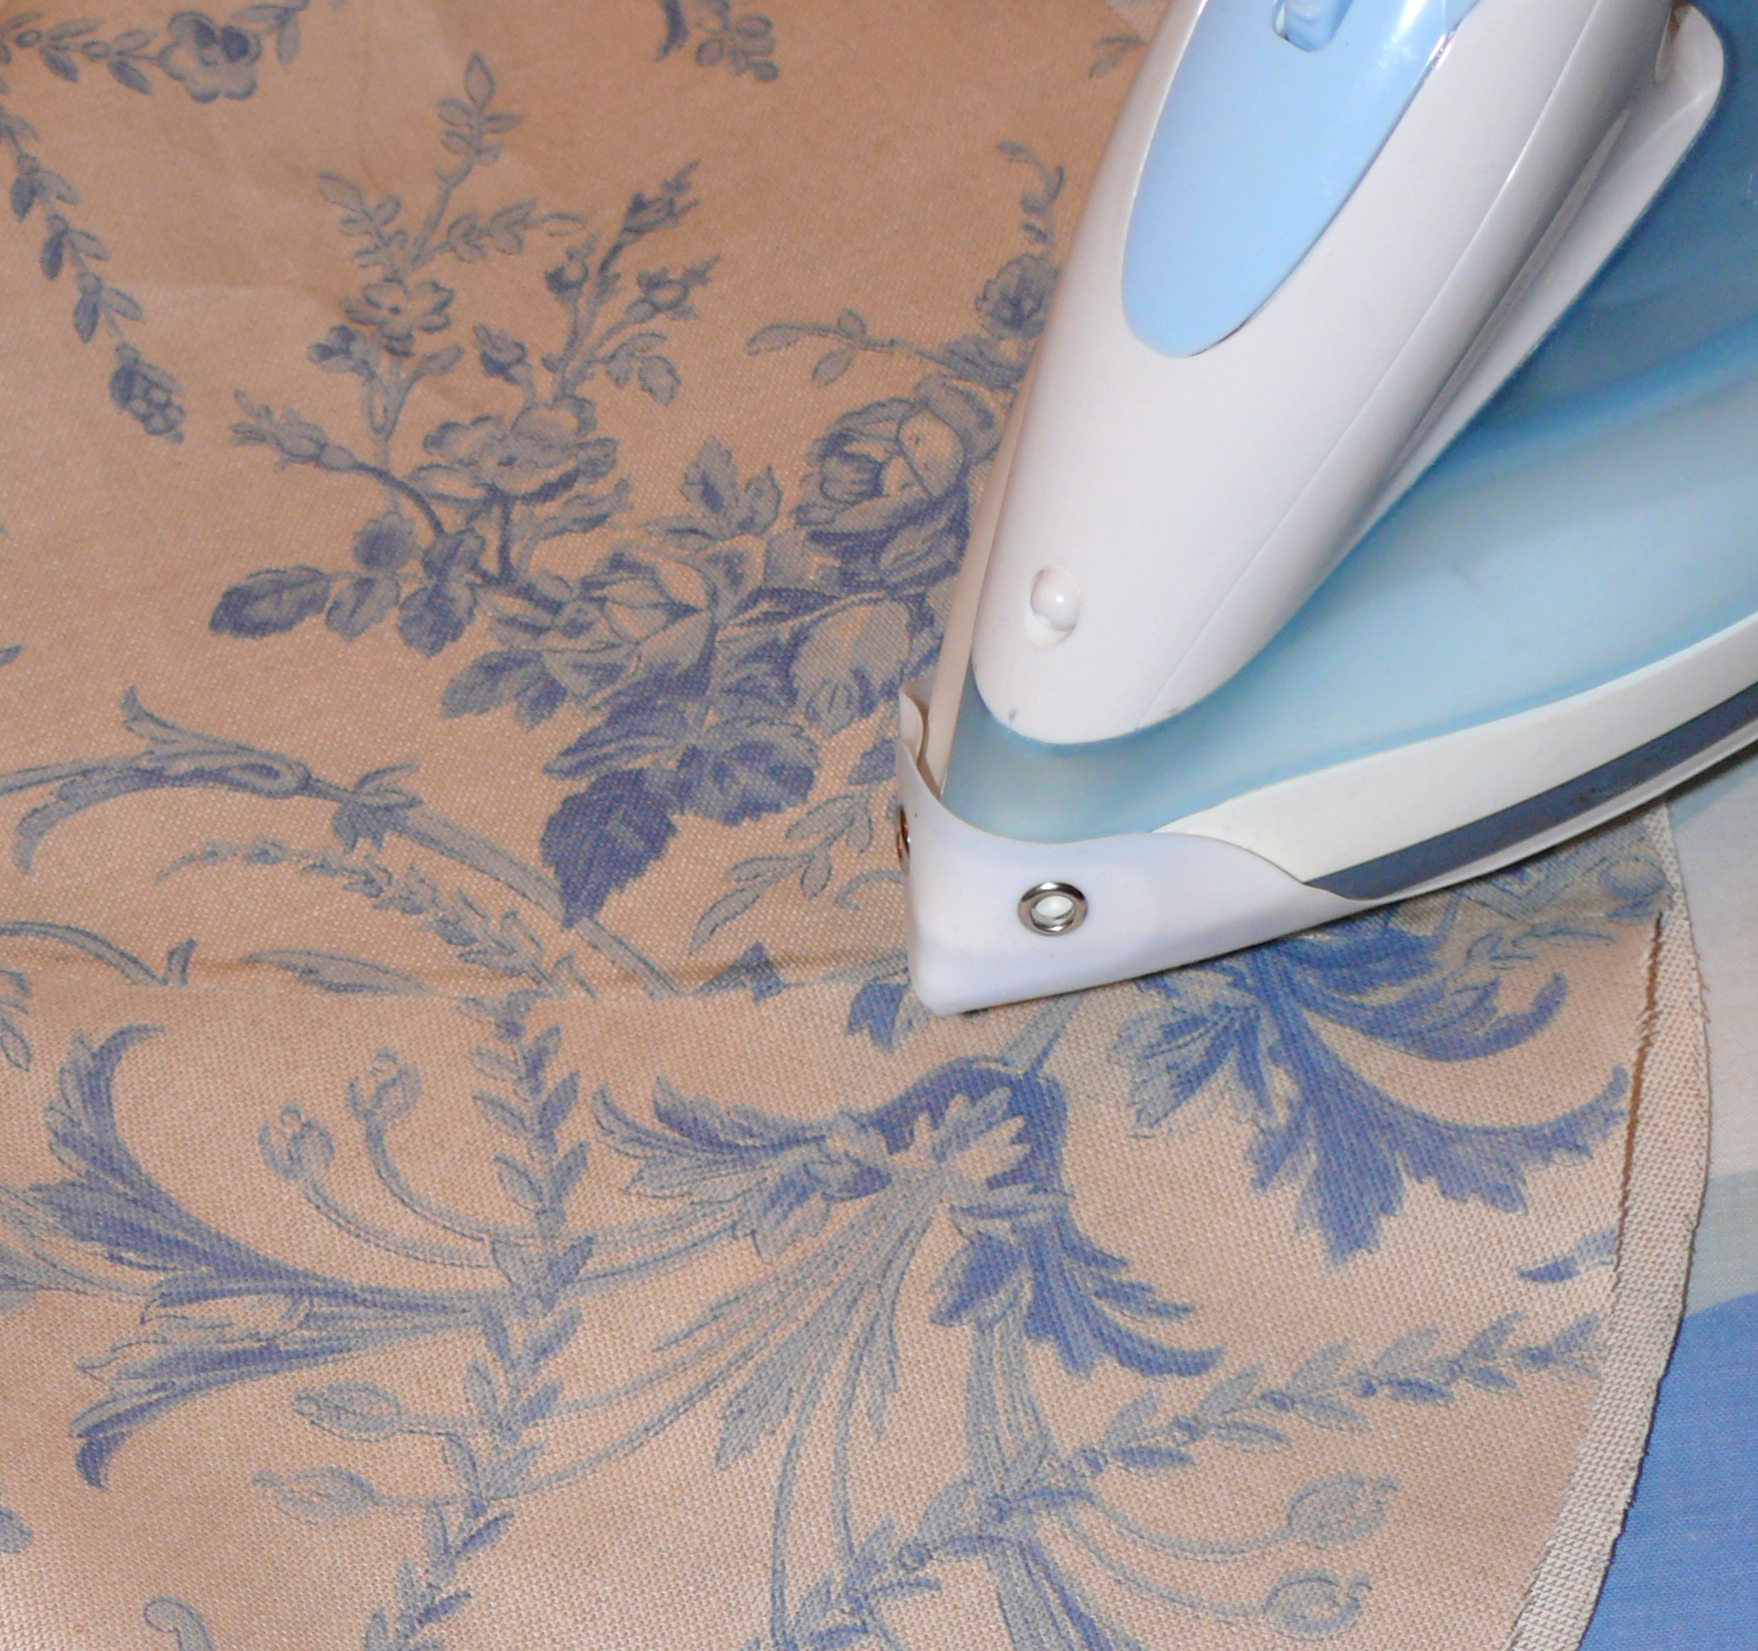 3) Connect the joint. Some types of fabric glue require ironing fabric after application. Carefully iron the whole lampshade to remove the wrinkles.